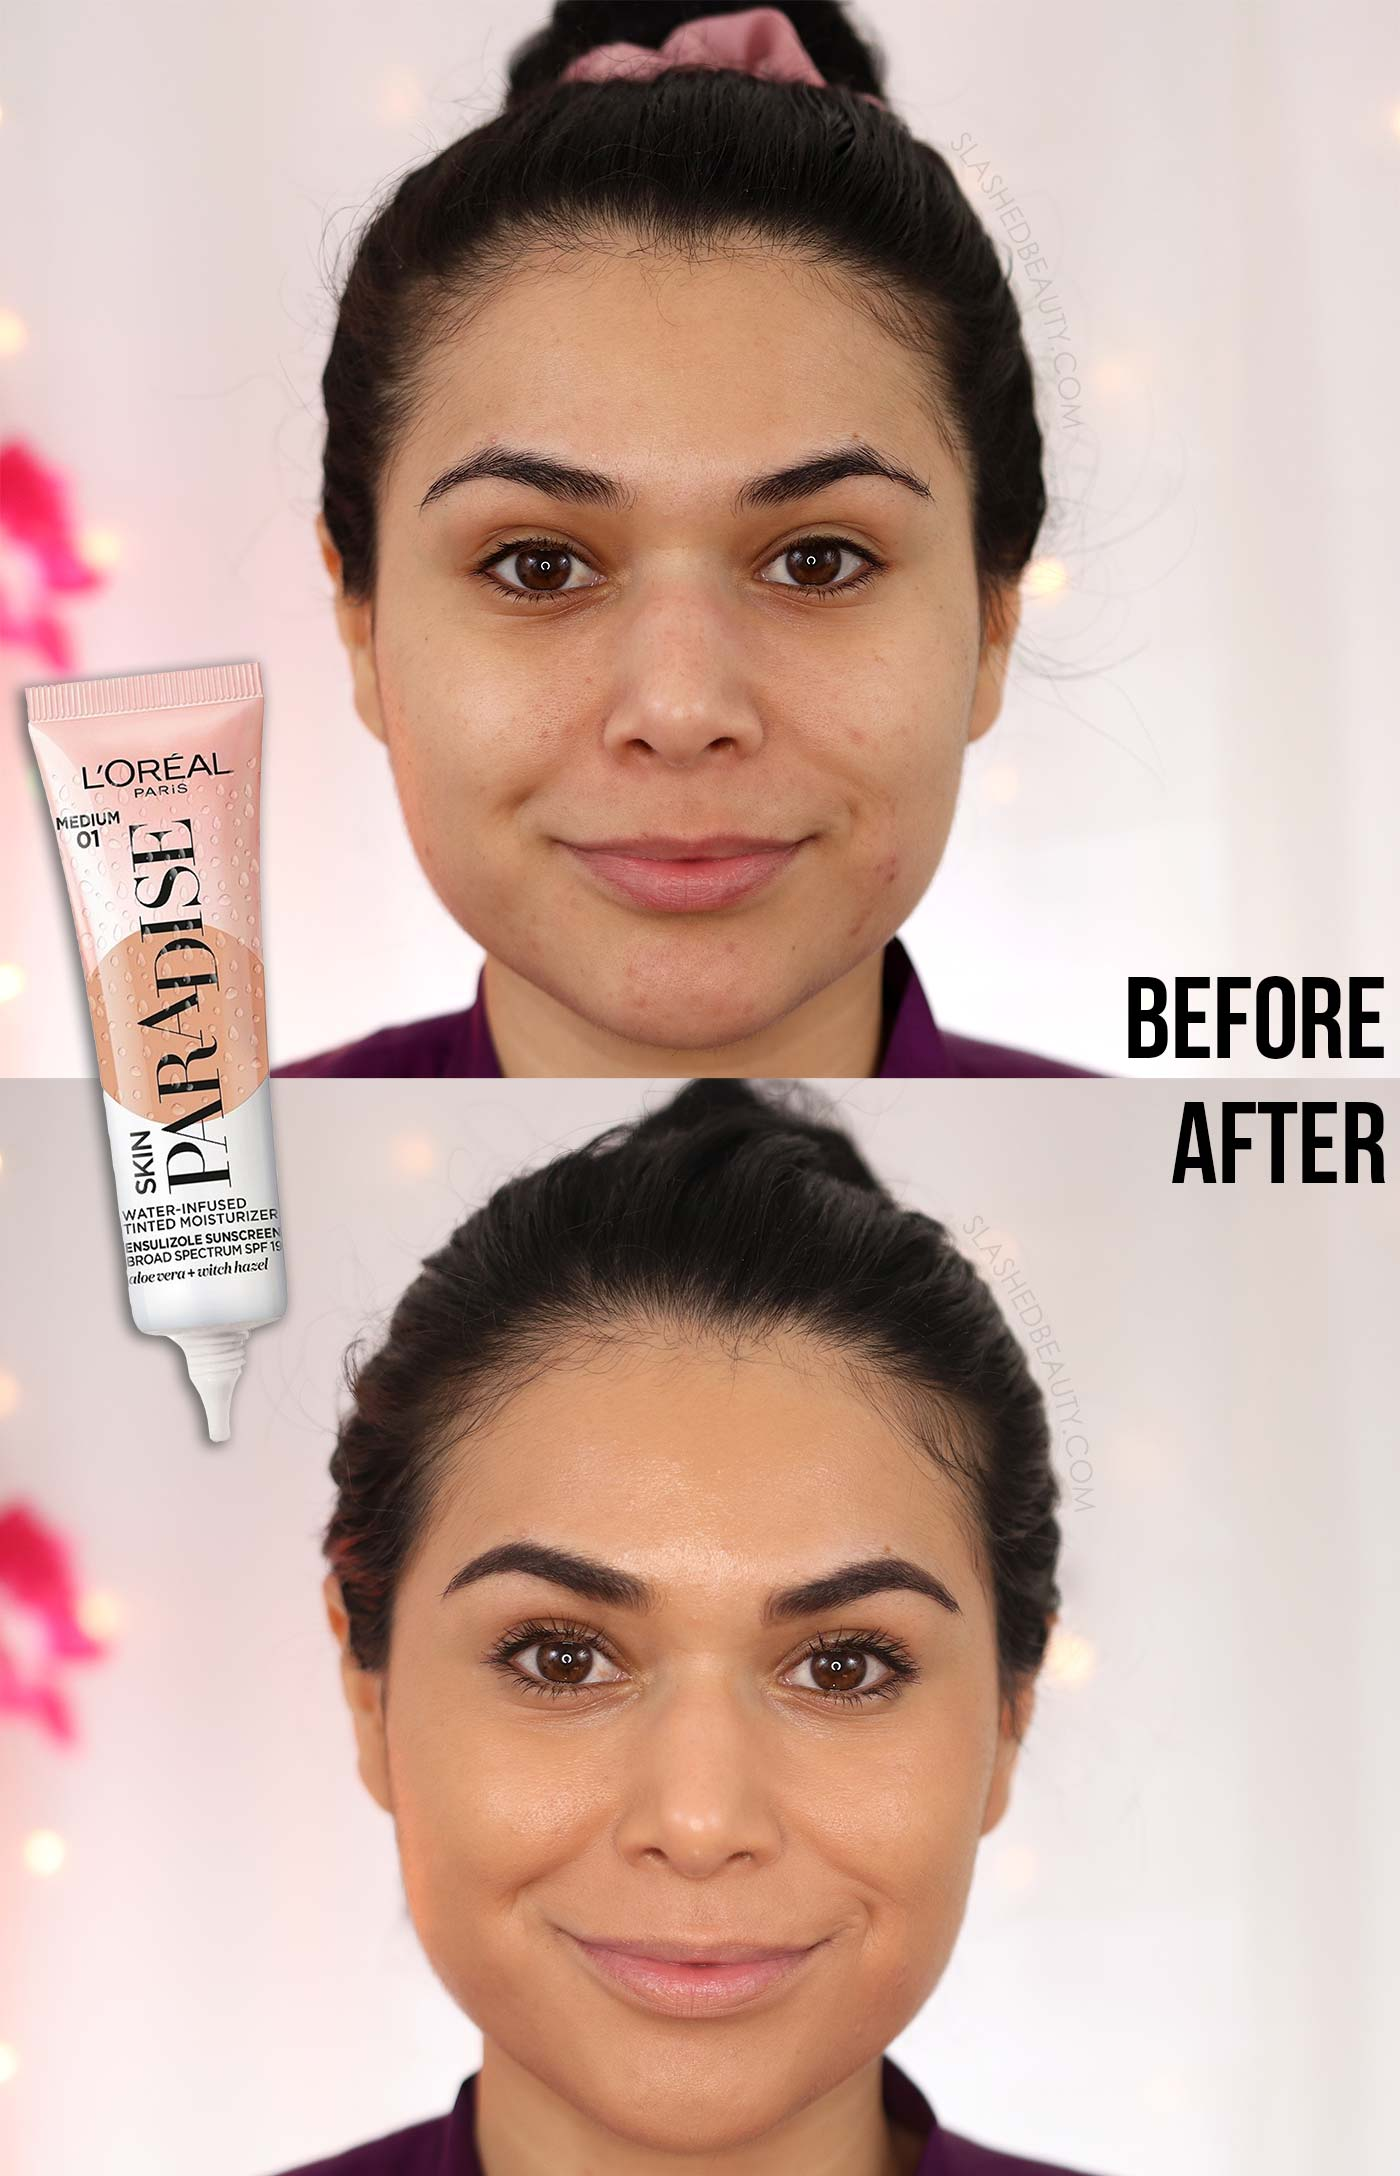 REVIEW: L'Oreal Skin Paradise Water Infused Tinted Moisturizer for Combo Skin | Before and After | Slashed Beauty